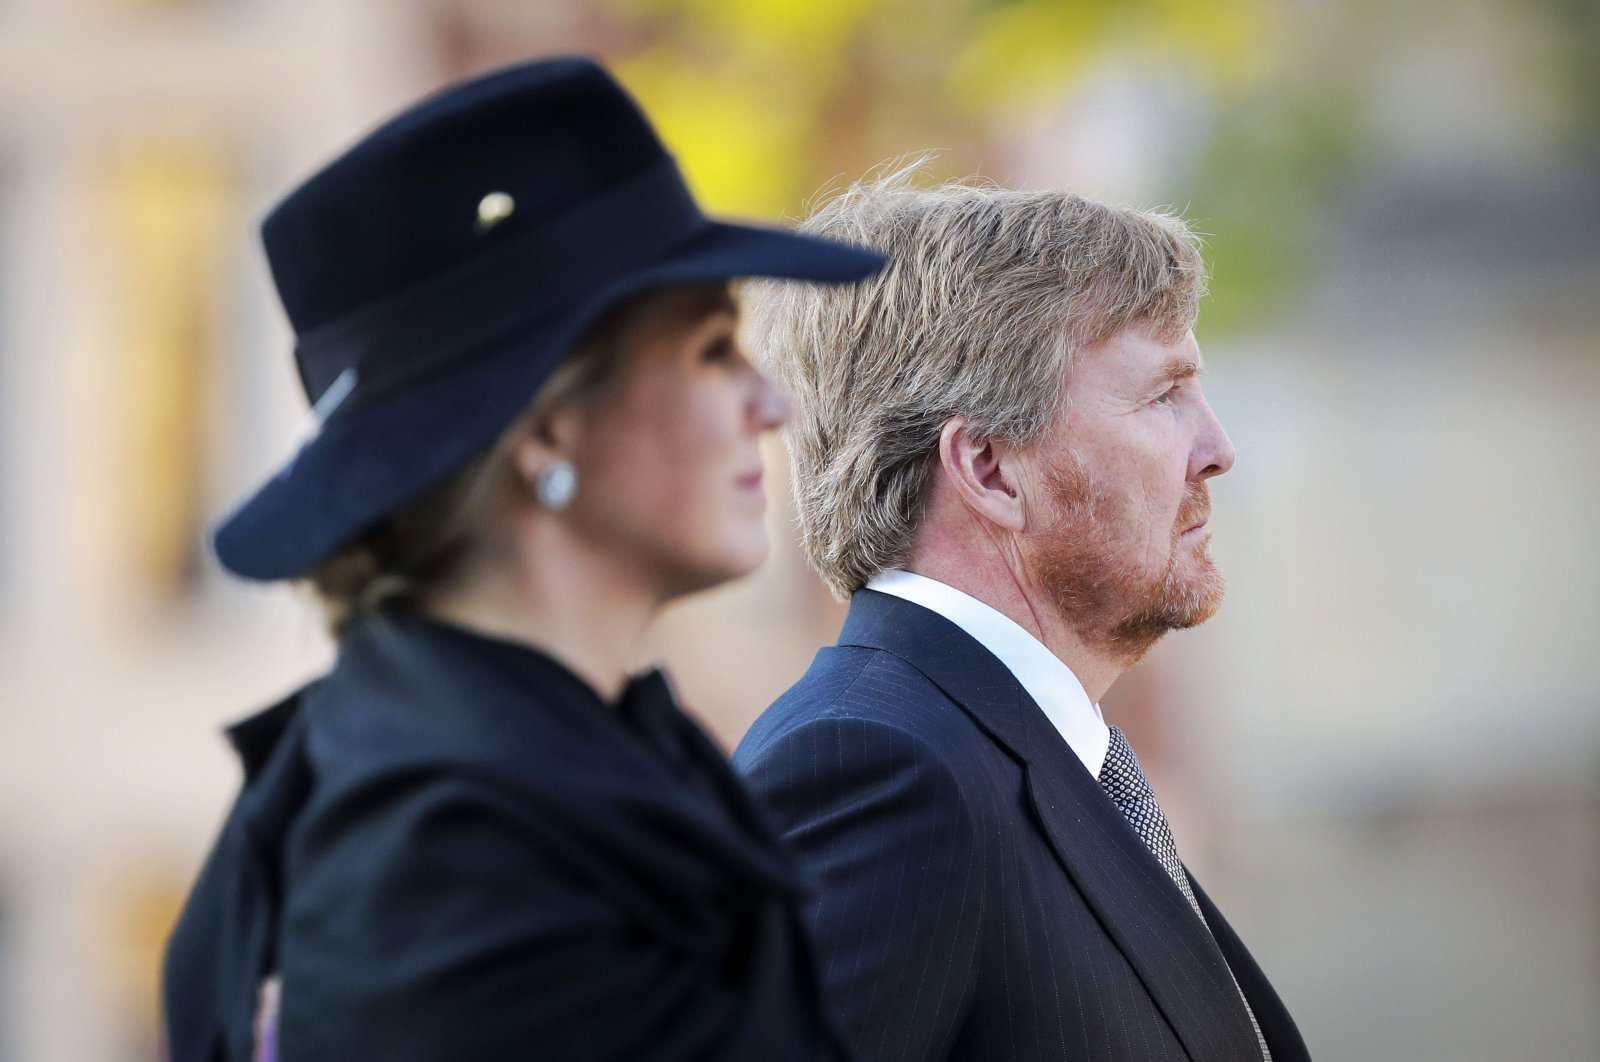 Netherlands' Queen Maxima and King Willem-Alexander pay their respects during a wreath-laying ceremony on Dam Square to commemorate National Remembrance Day, which will take place without an audience due to the spread of the COVID-19 disease, Amsterdam, the Netherlands, May 4, 2020. (AFP Photo)